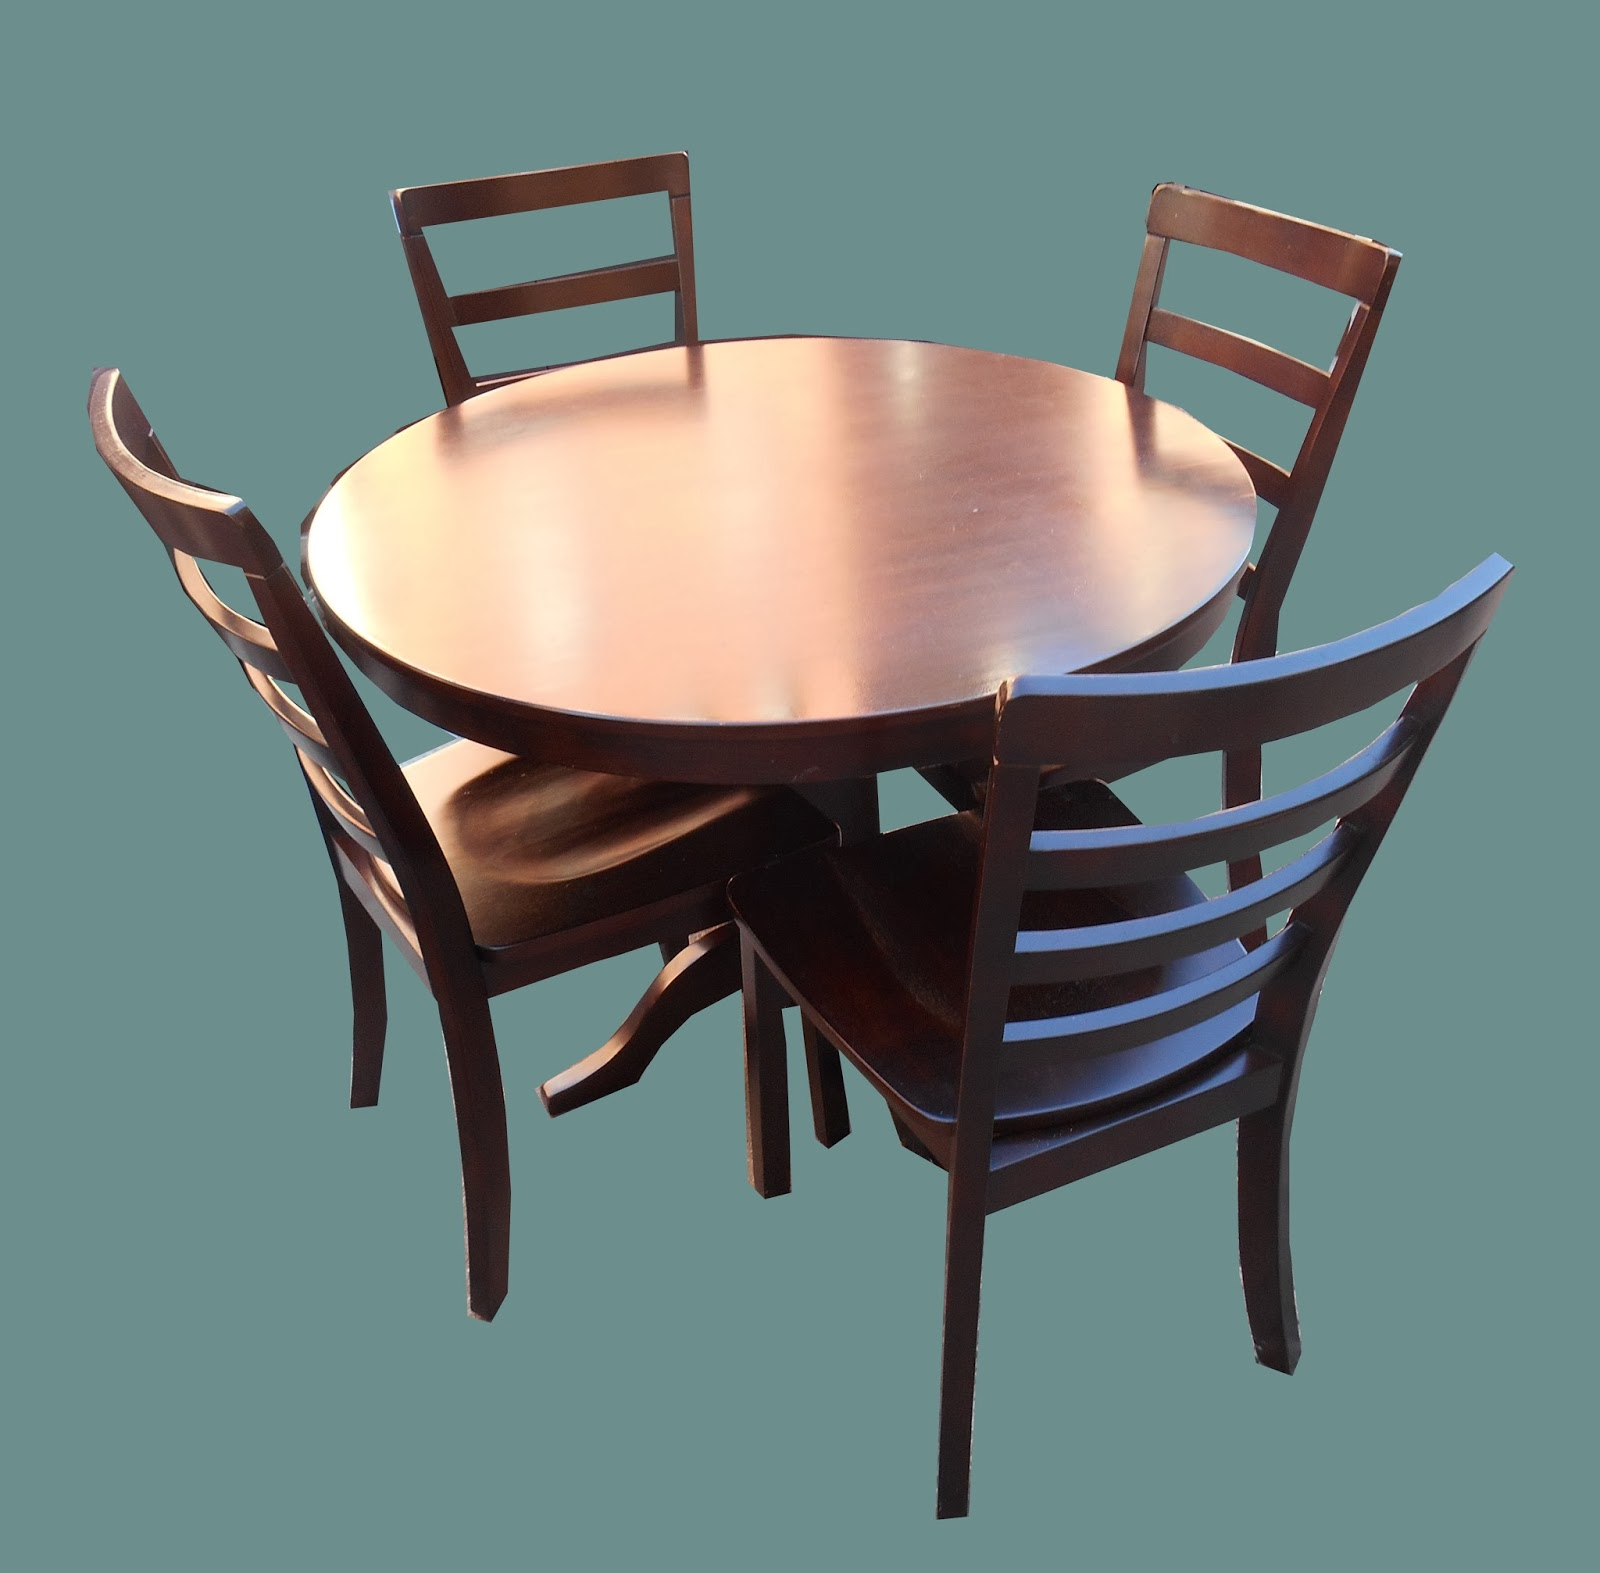 Uhuru Furniture Collectibles Contemporary Round Dining Table 4 Chair